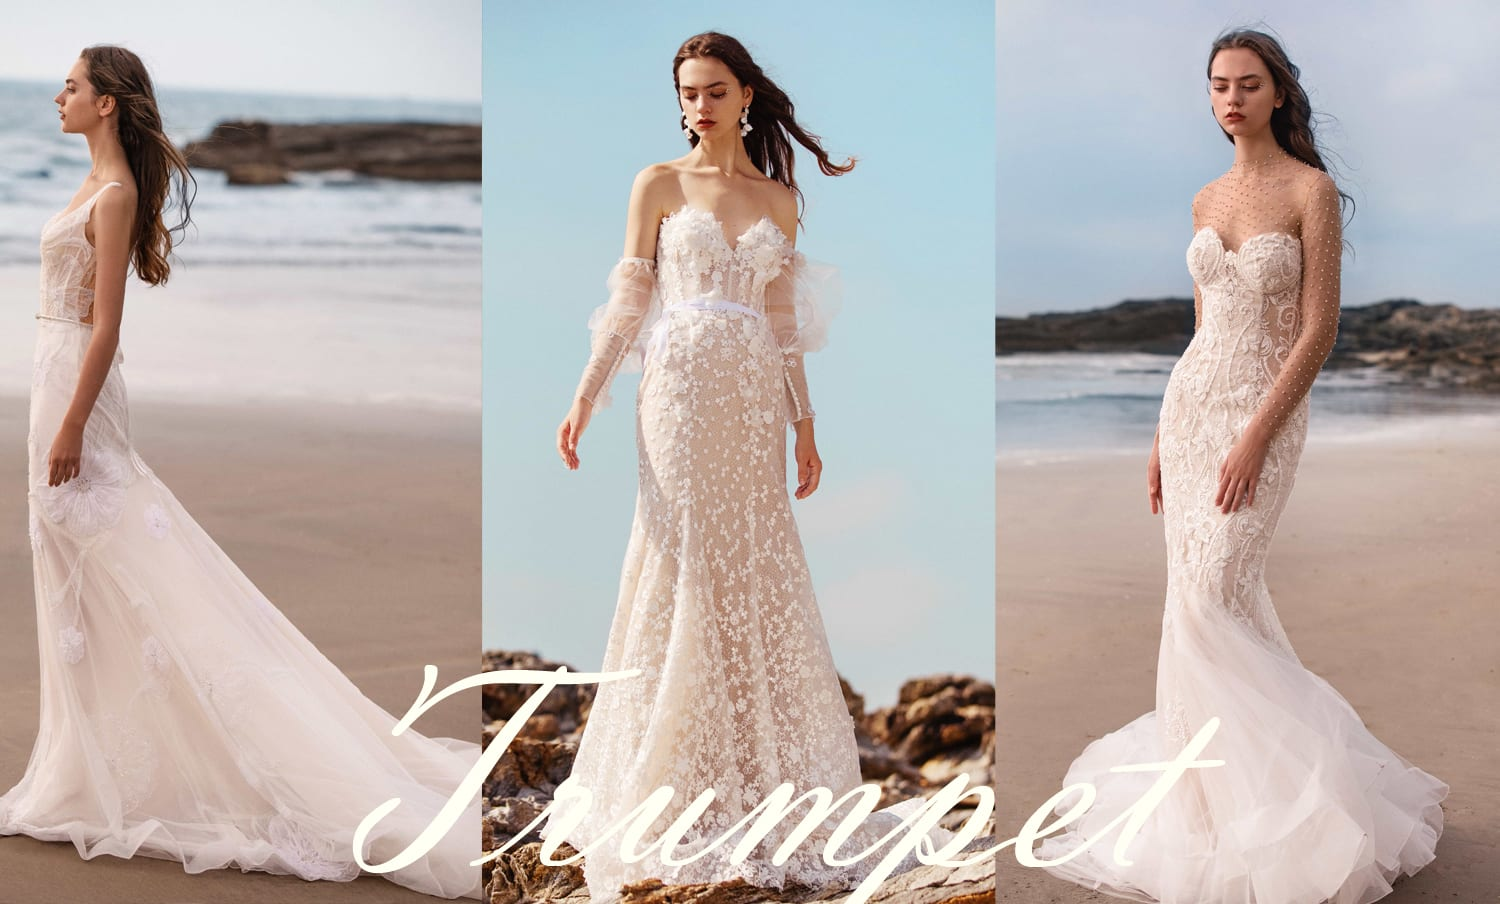 Trumpet or fit and flare wedding dresses